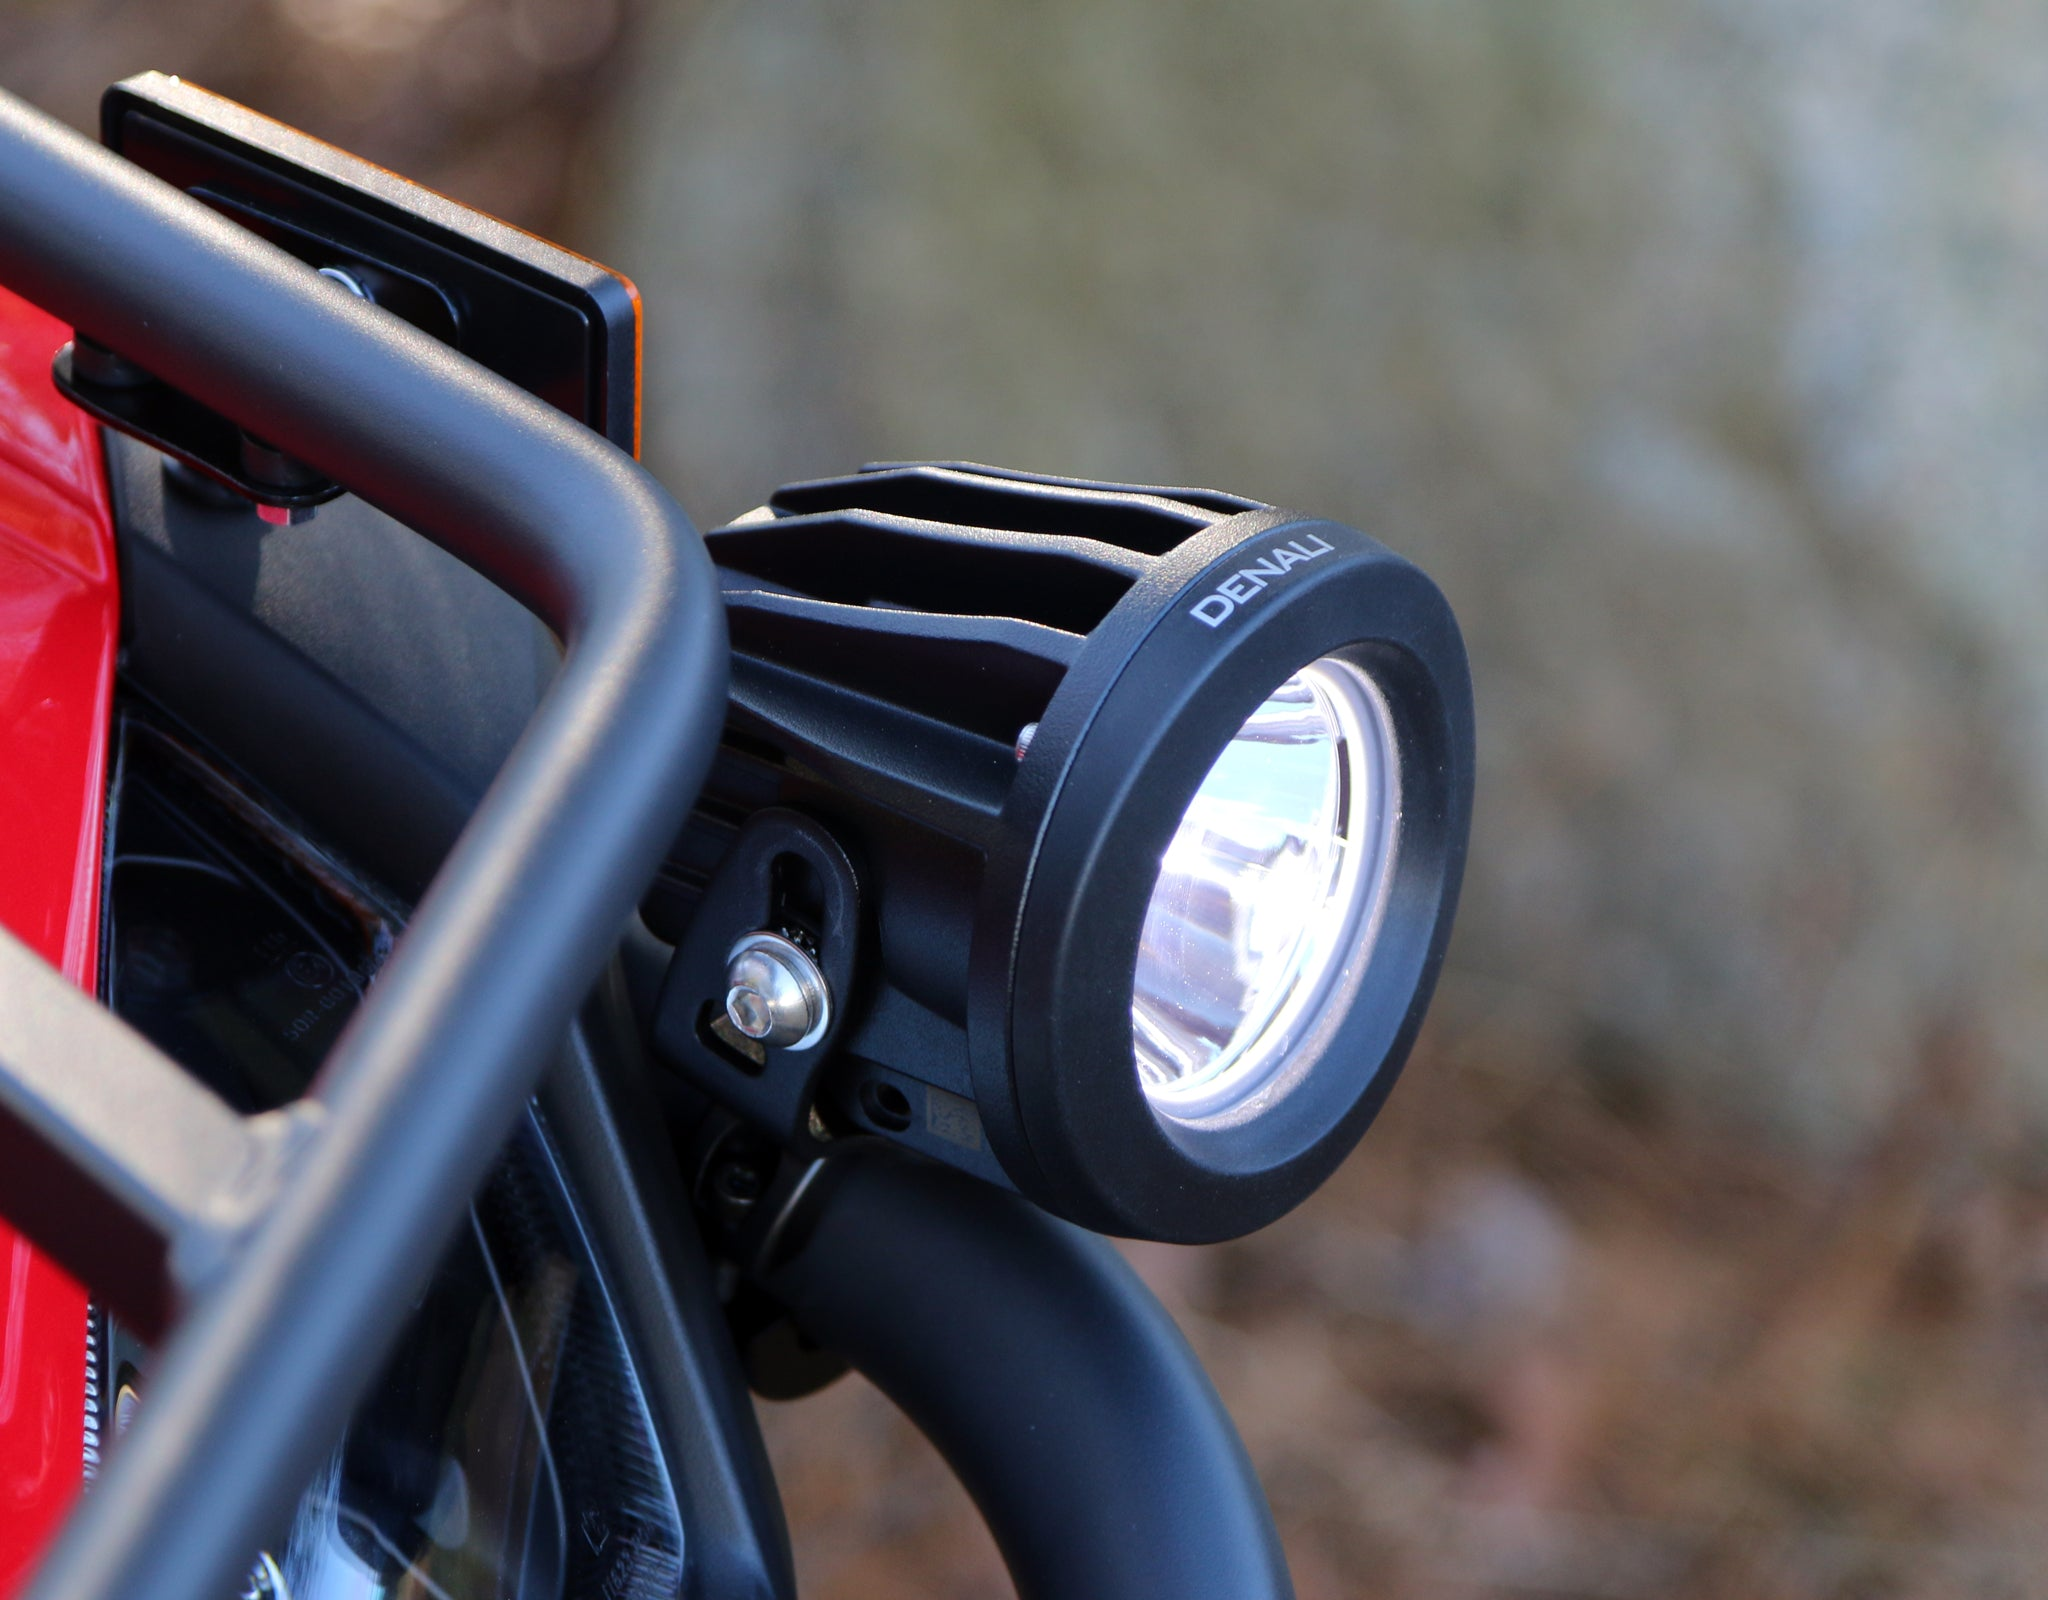 DR1 LED Light Kit mounted to bumper using Universal Bar Clamp Light Mount